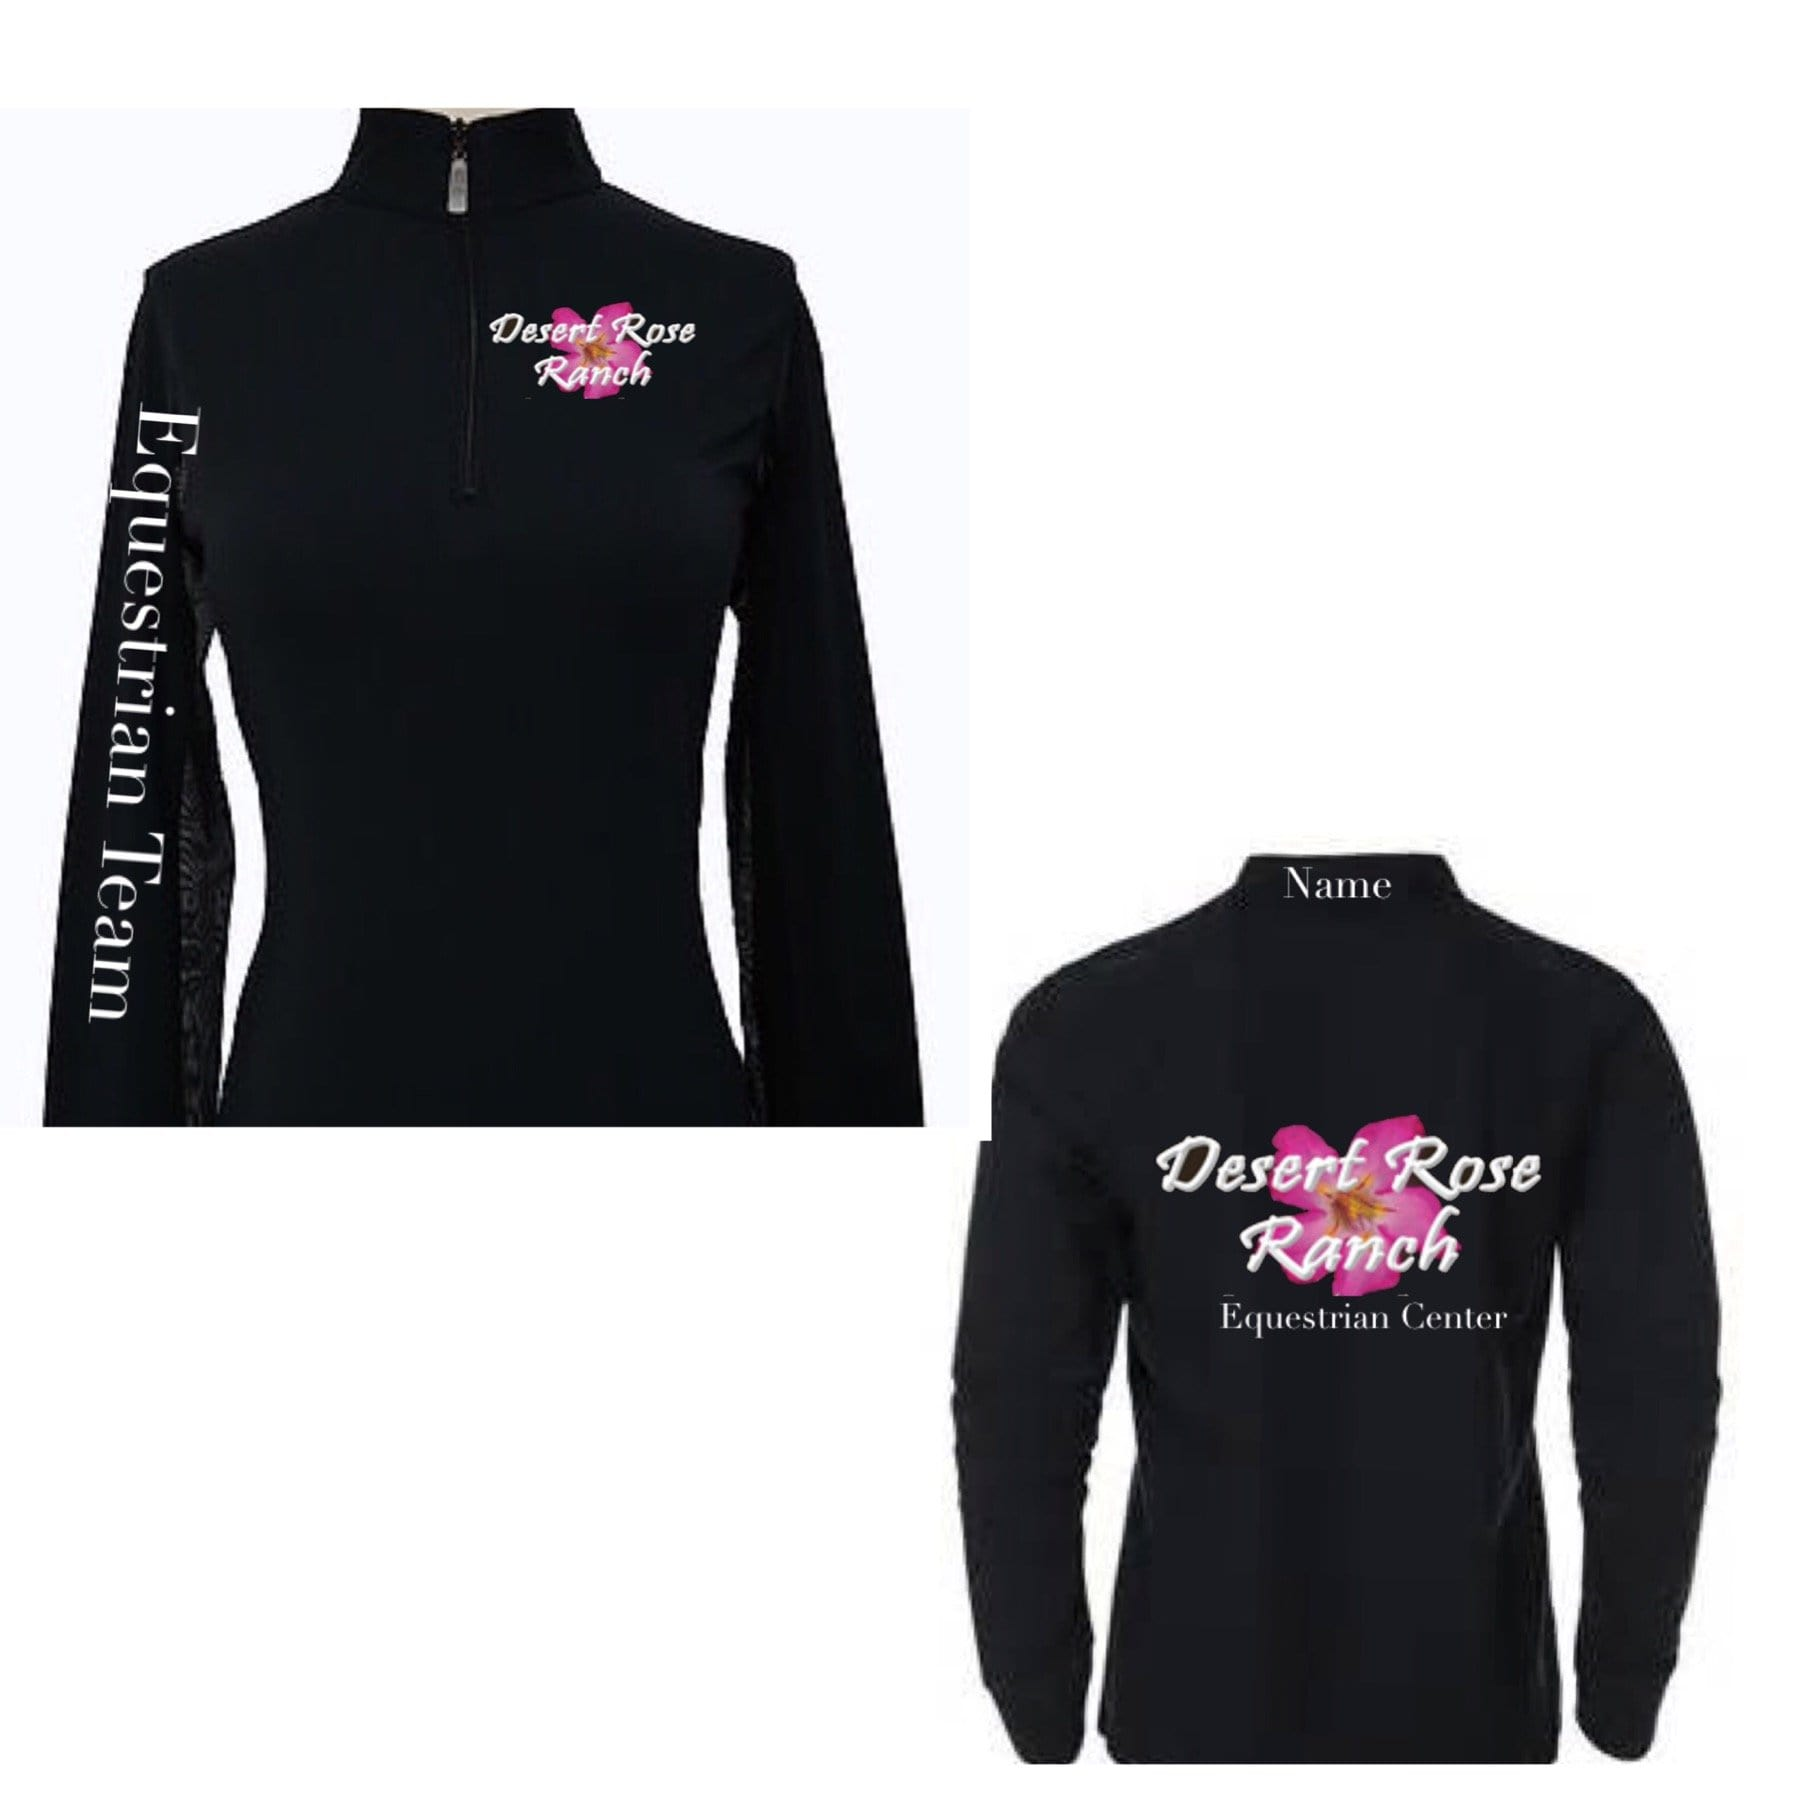 Equestrian Team Apparel Custom Team Shirts XXXS / Black / Trainer Desert Rose Ranch equestrian team apparel online tack store mobile tack store custom farm apparel custom show stable clothing equestrian lifestyle horse show clothing riding clothes horses equestrian tack store